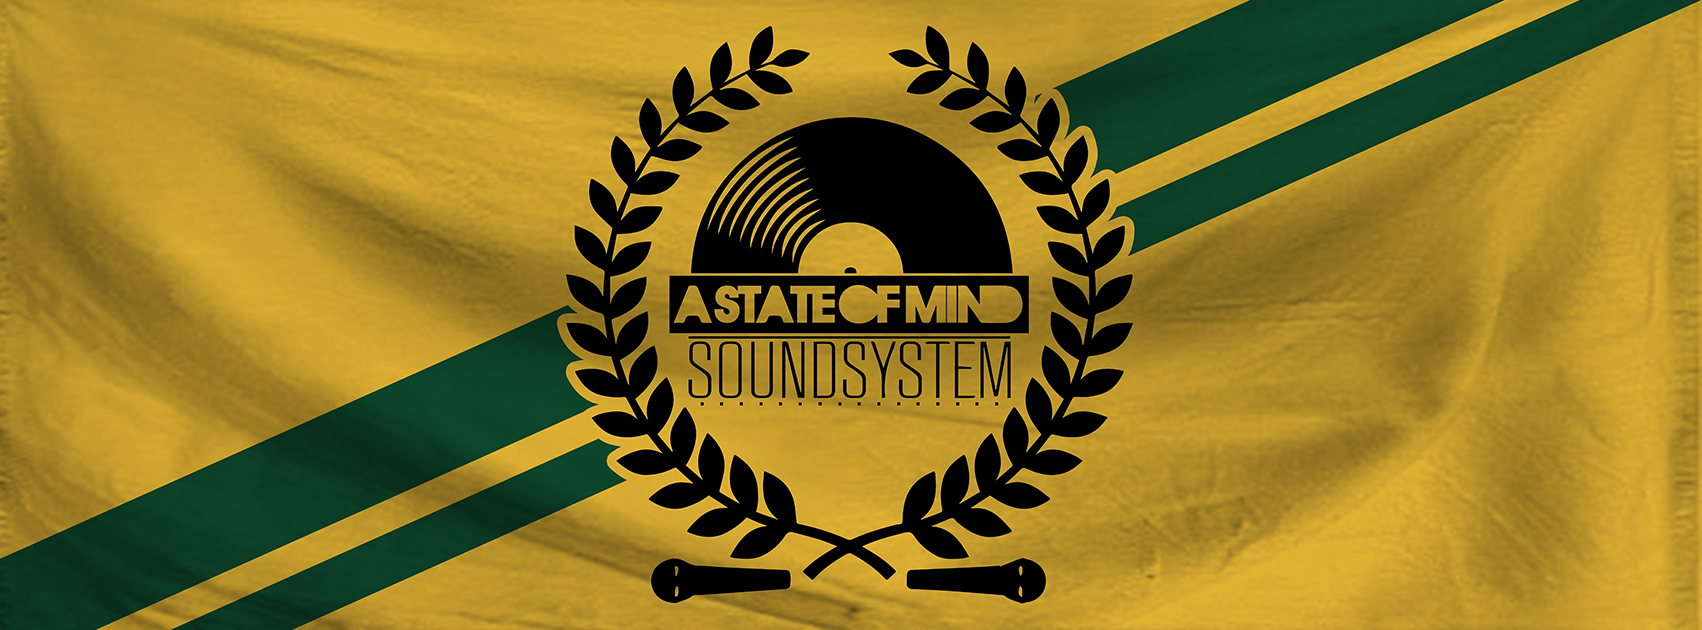 ASM SOUNDSYSTEM FLAG